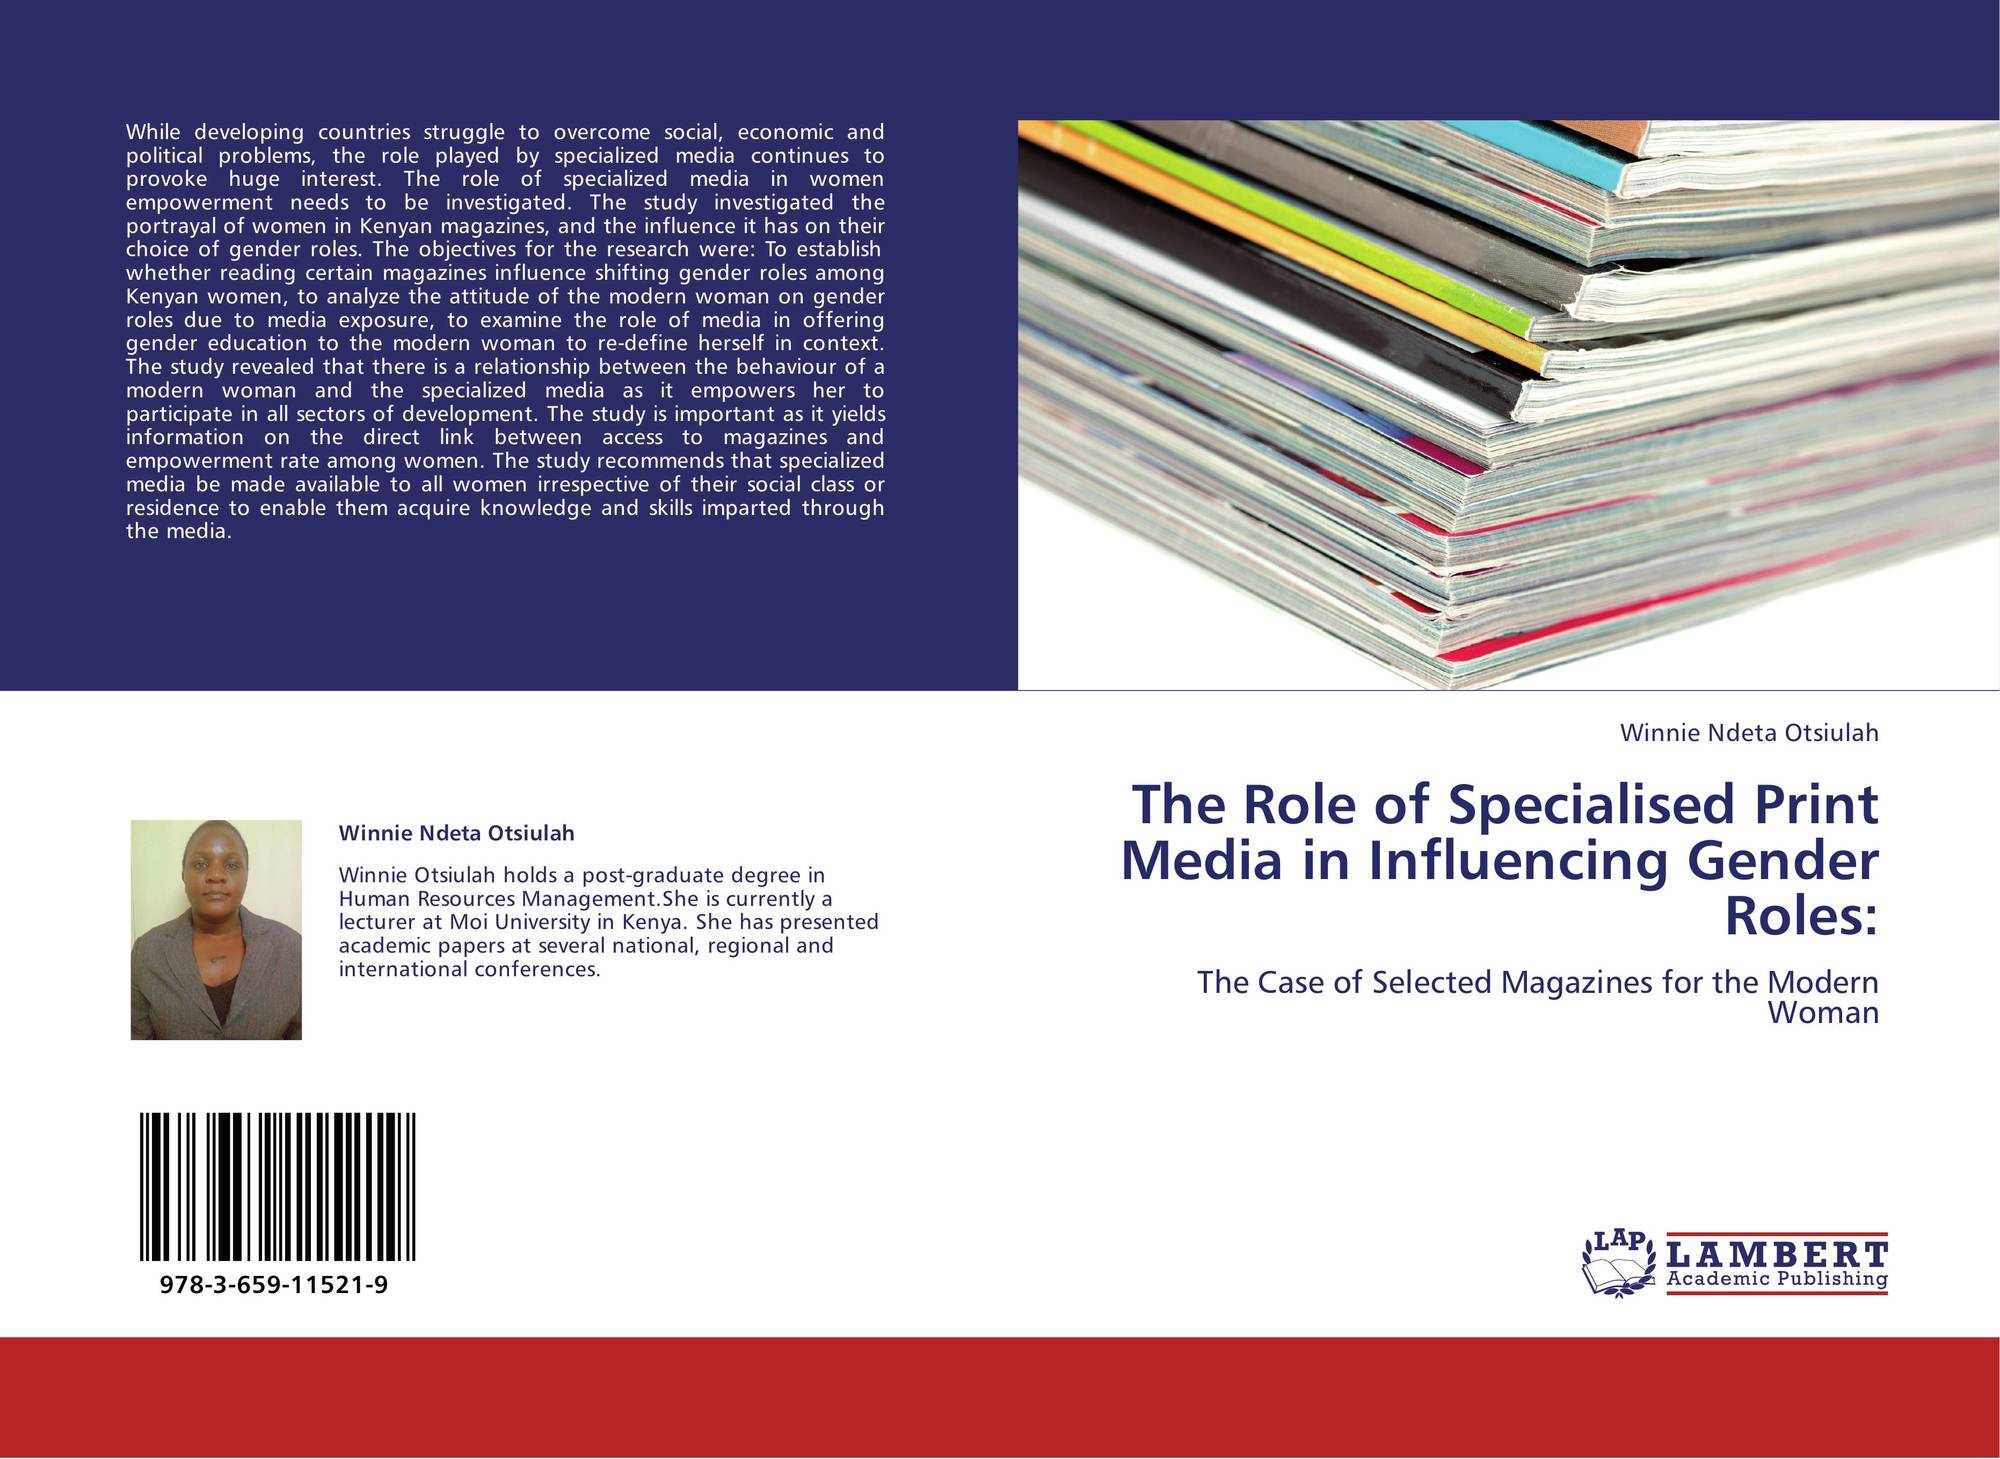 an analysis of the crisis of the modern society and the role of media in it Extreme views are talking about the so-called permanent crisis of male identity, which lead to efforts to control public discourse and, through this control establish the role of men in society as a dominant.